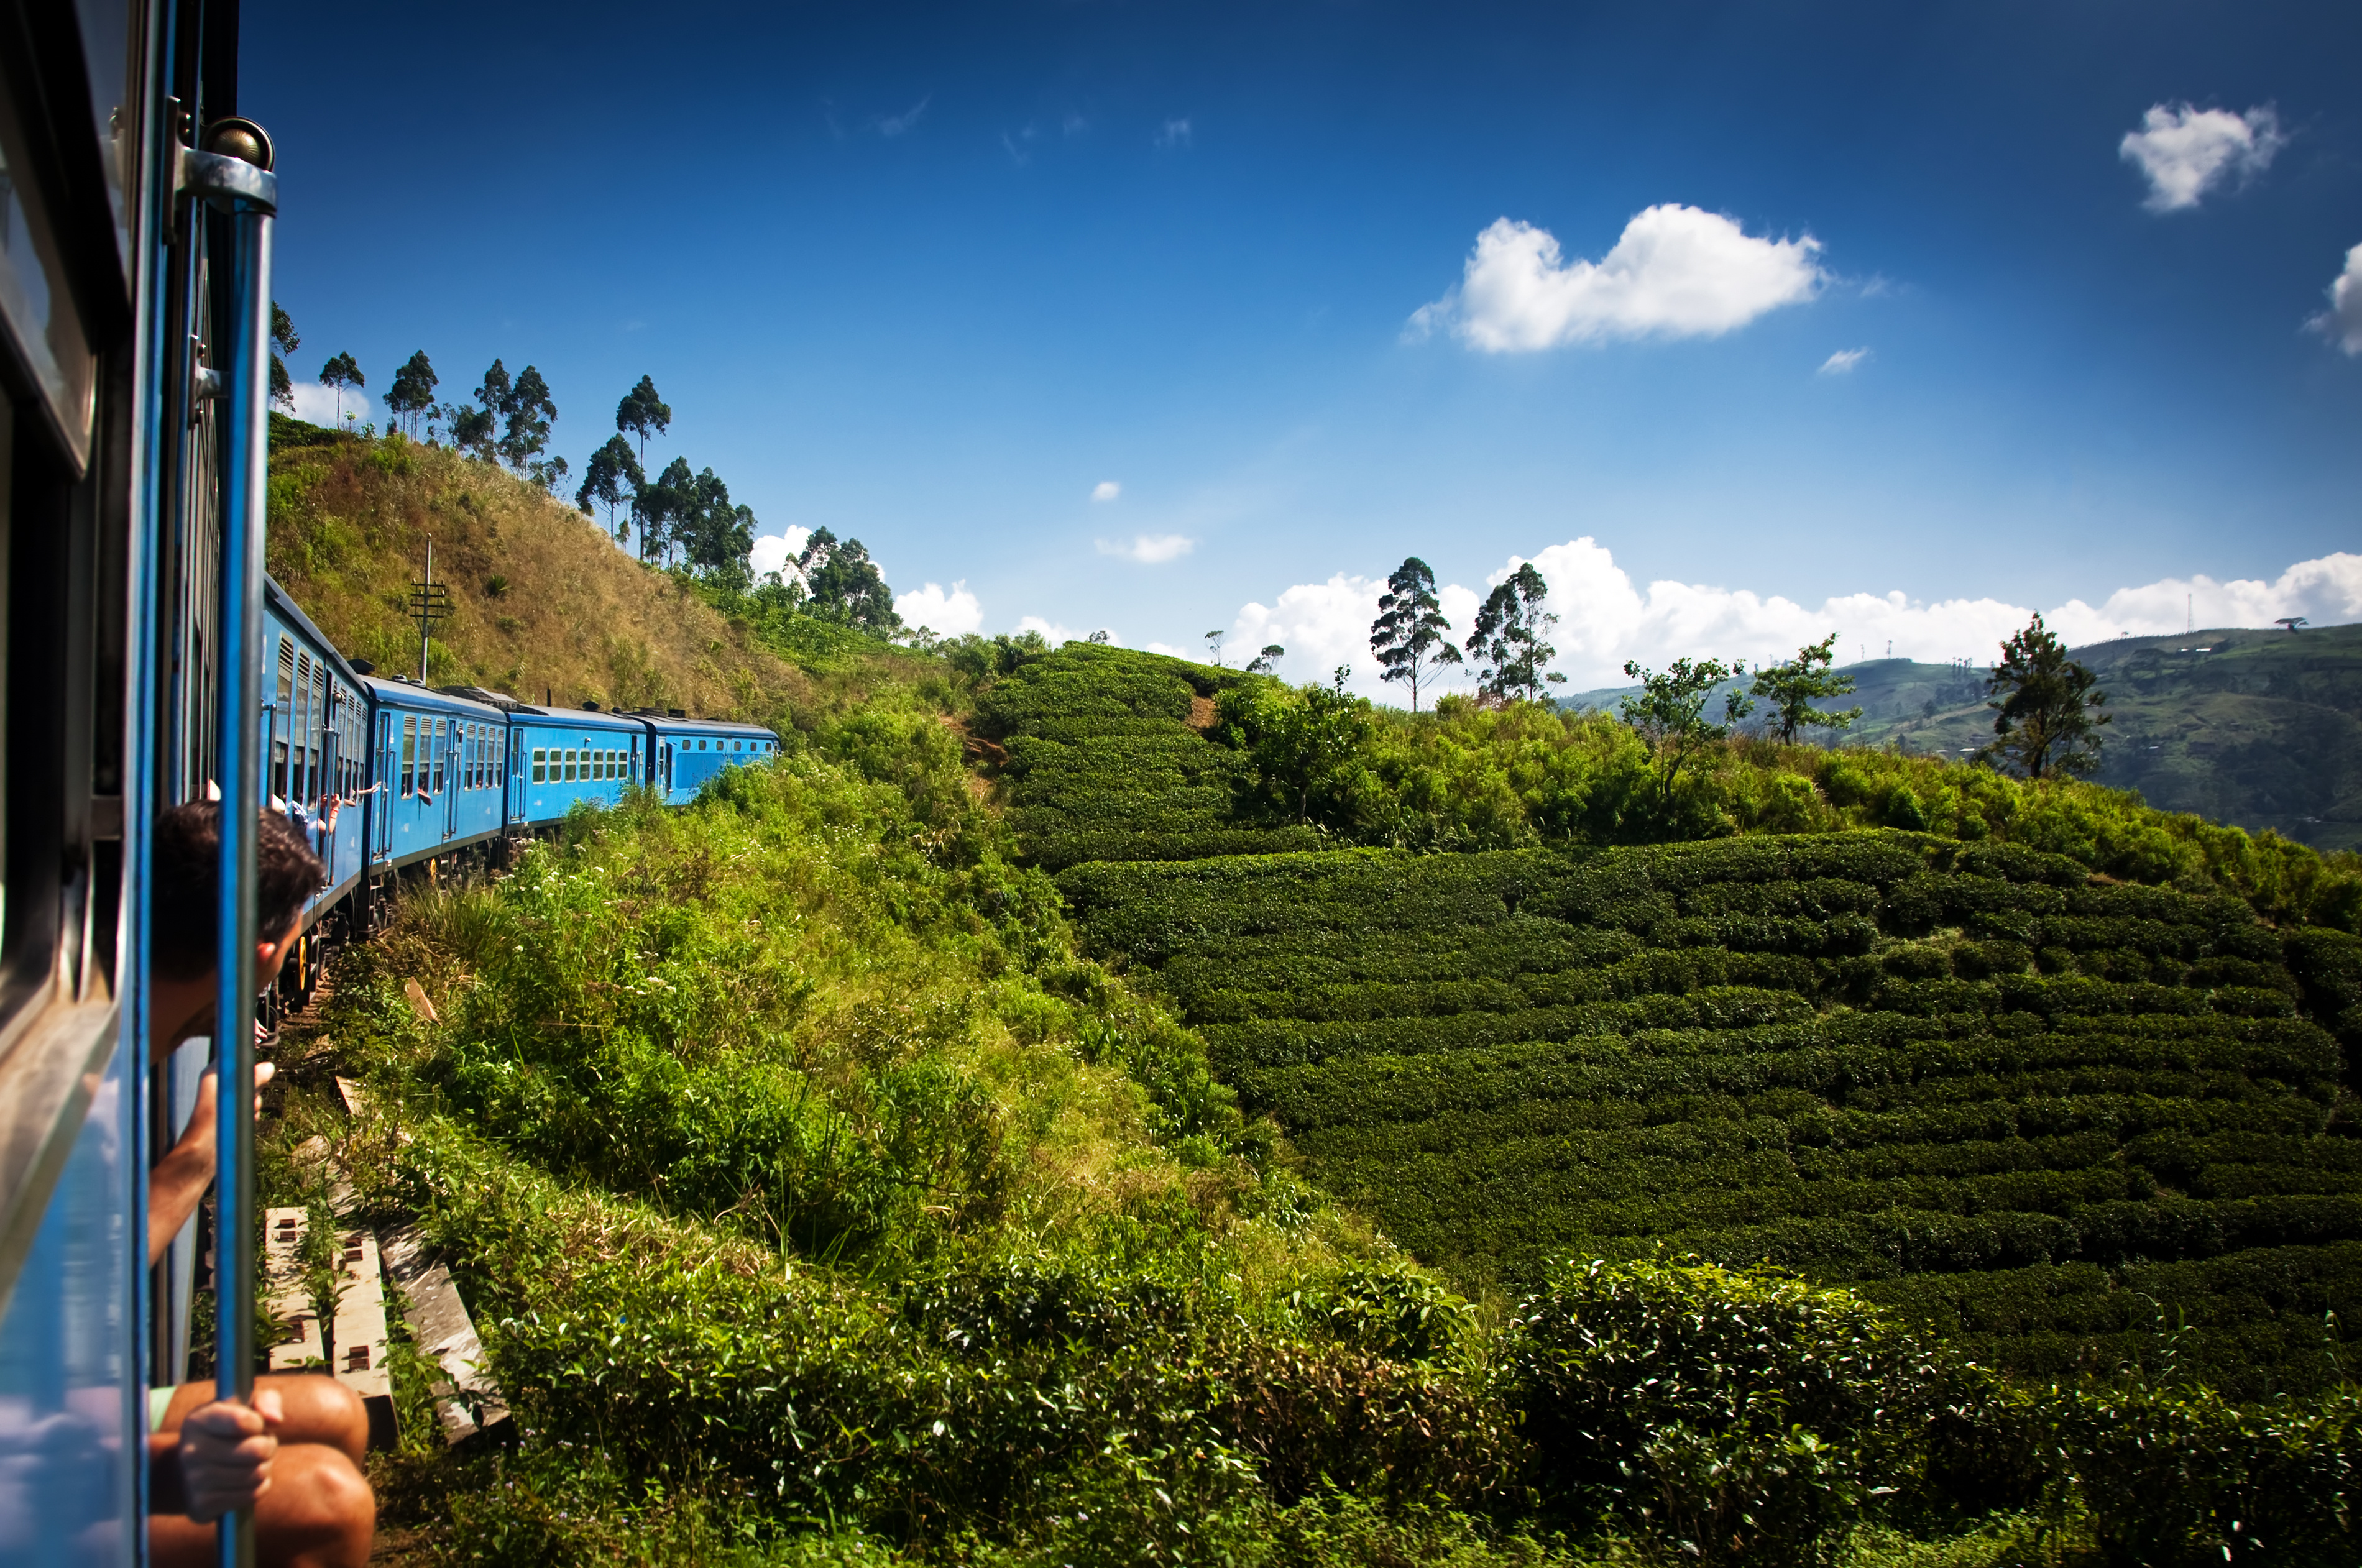 Tea plantations in the highlands of Sri Lanka, focus on sri lanka